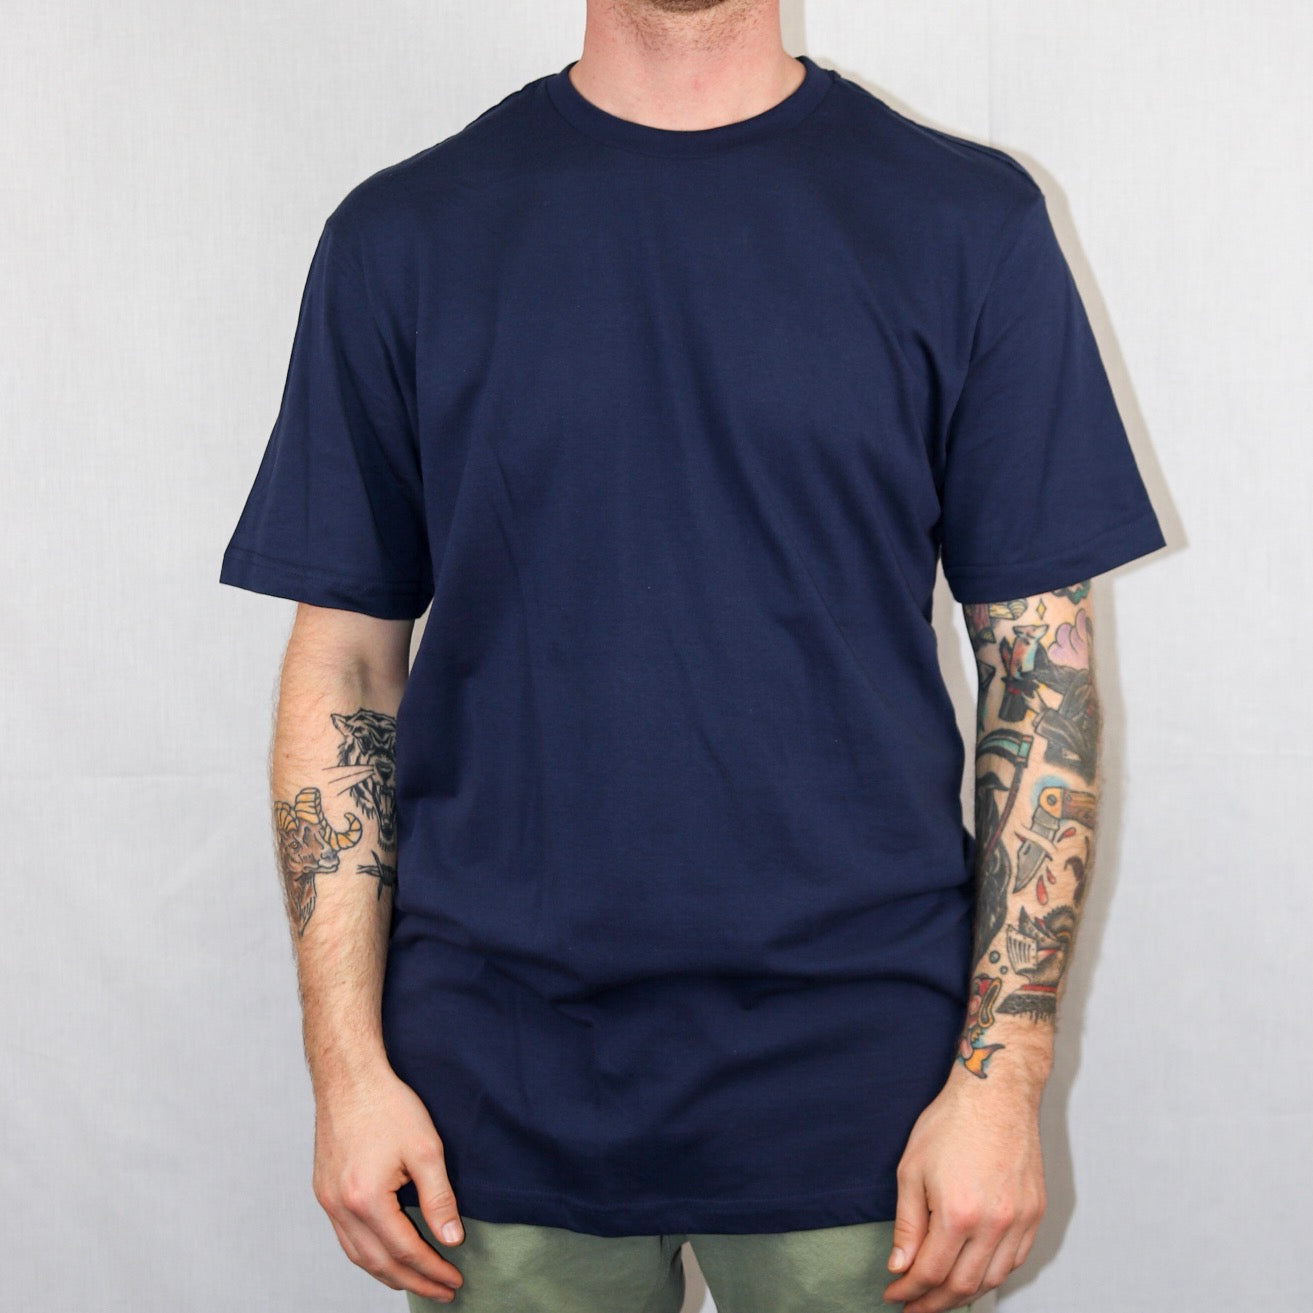 Script Tee - Navy - The Populess Company